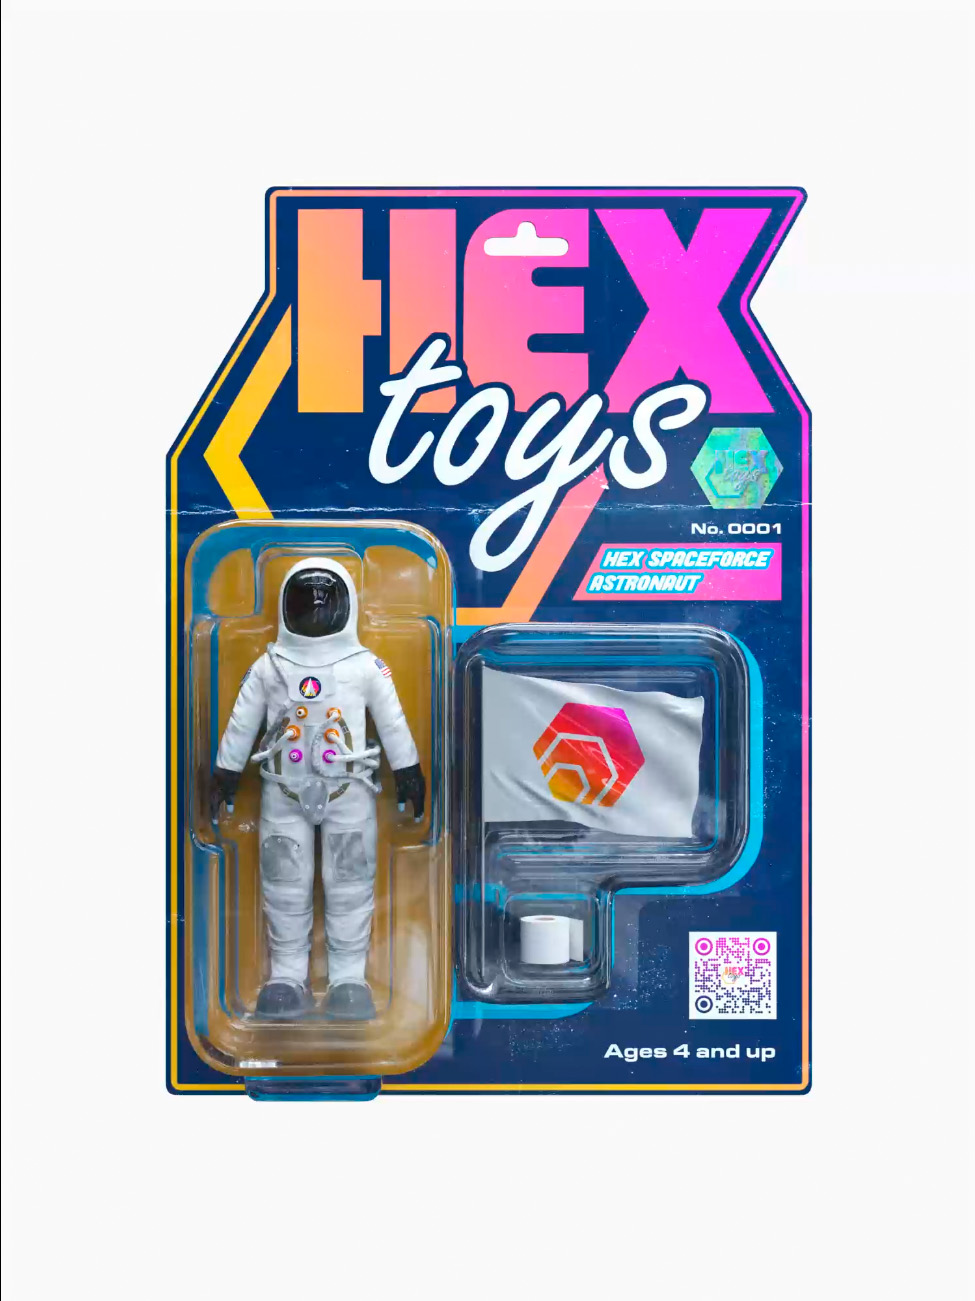 HEX SPACE FORCE ASTRONAUT